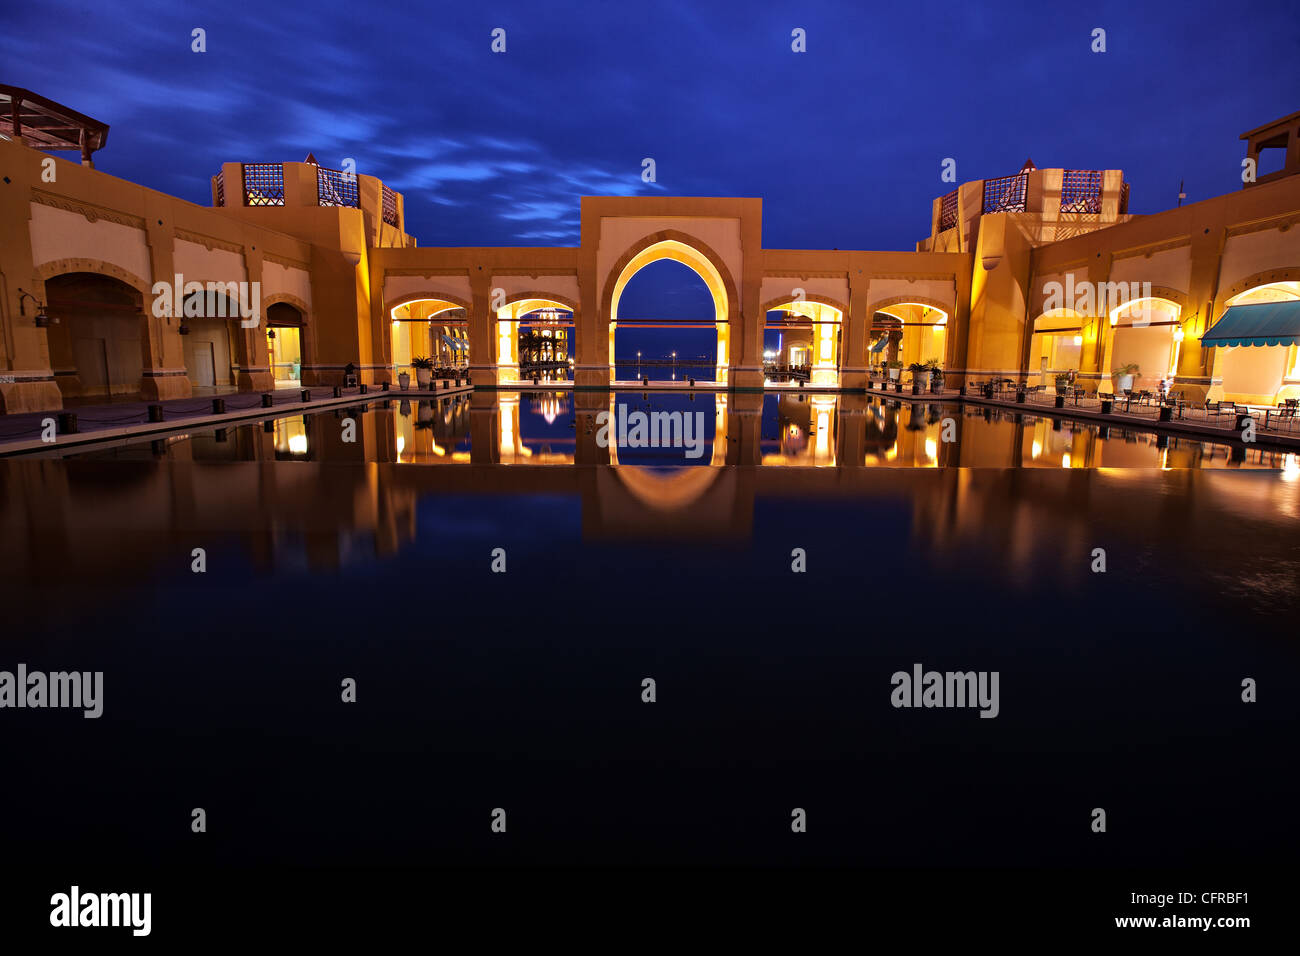 Blue sky early in the morning at the city plaza in Fahaheel, Kuwait. - Stock Image